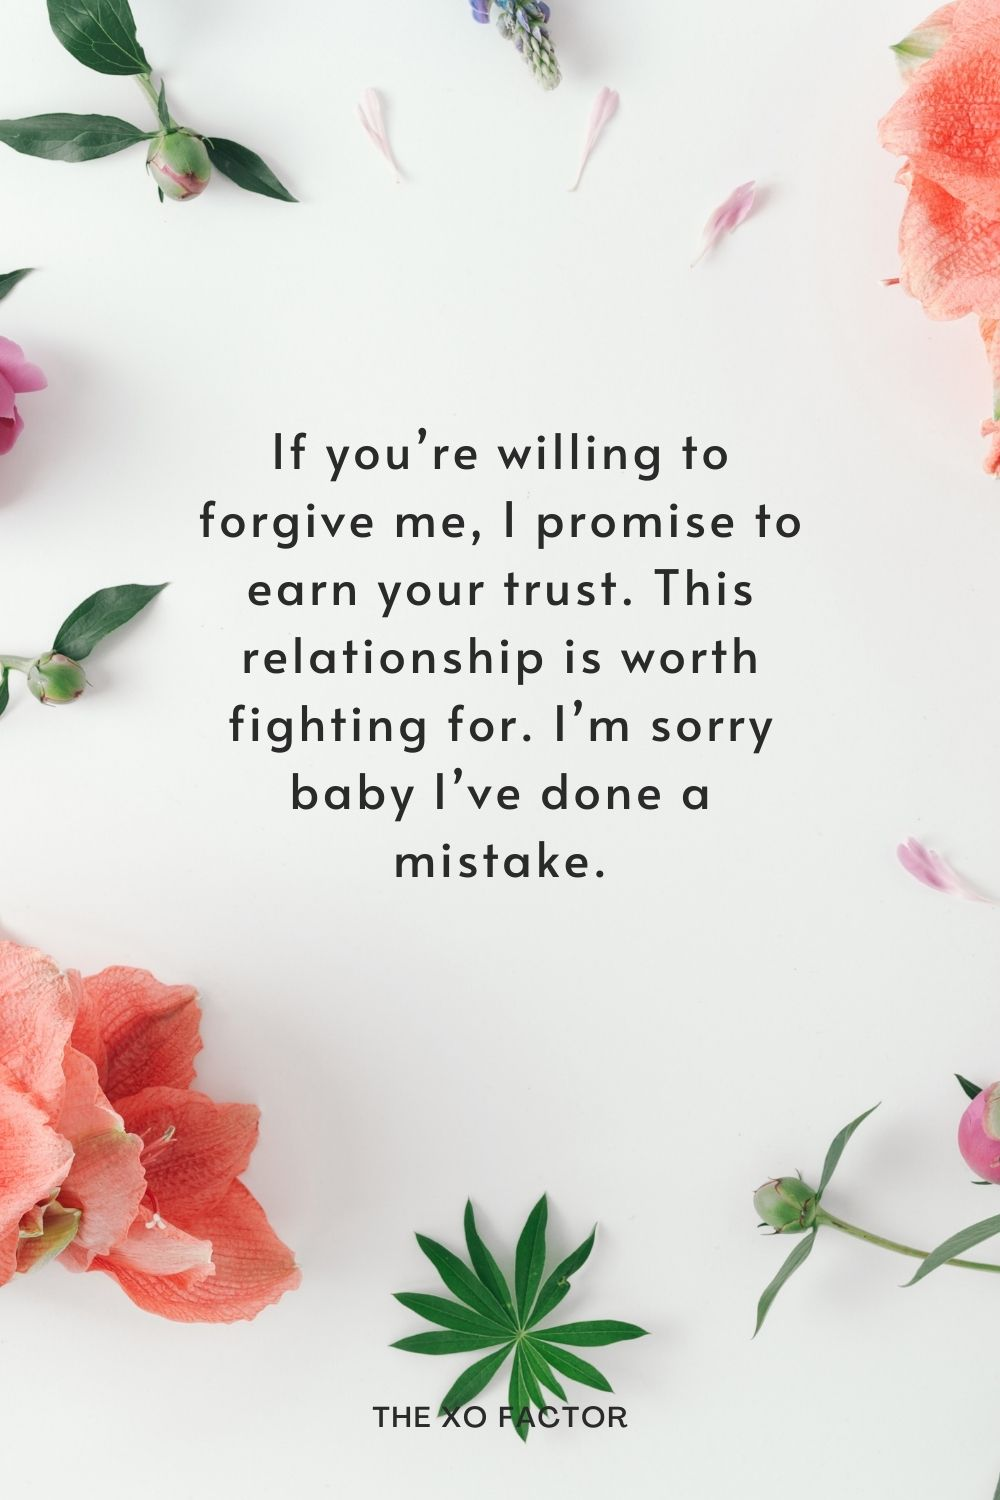 If you're willing to forgive me, I promise to earn your trust. This relationship is worth fighting for. I'm sorry baby I've done a mistake.